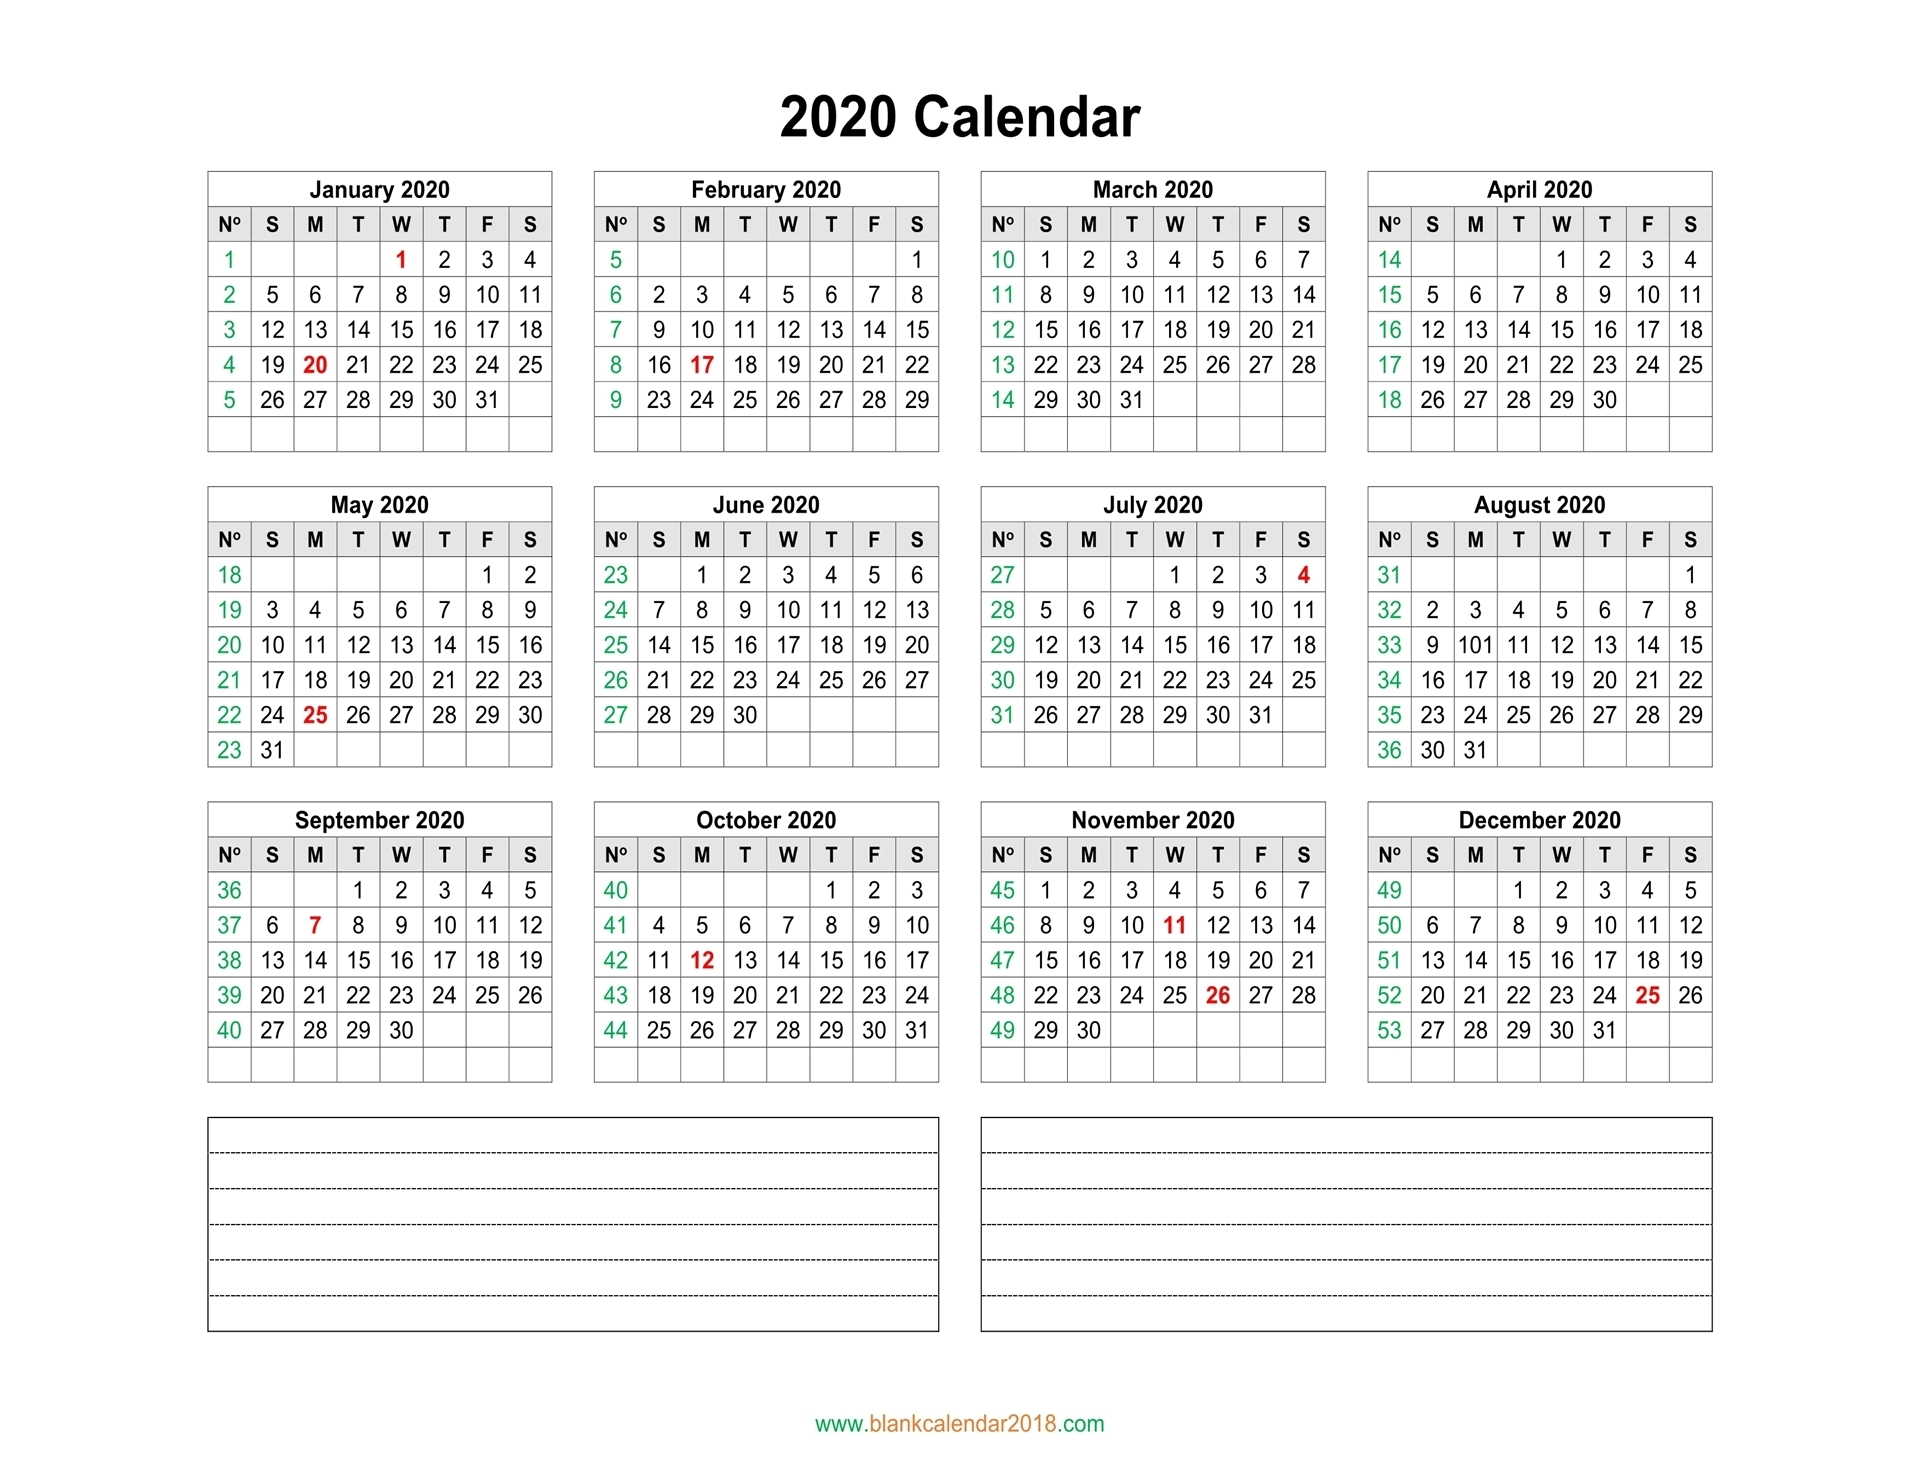 Blank Calendar 2020 throughout Yearly Monday To Sunday Calendar 2020 With Week Numbers